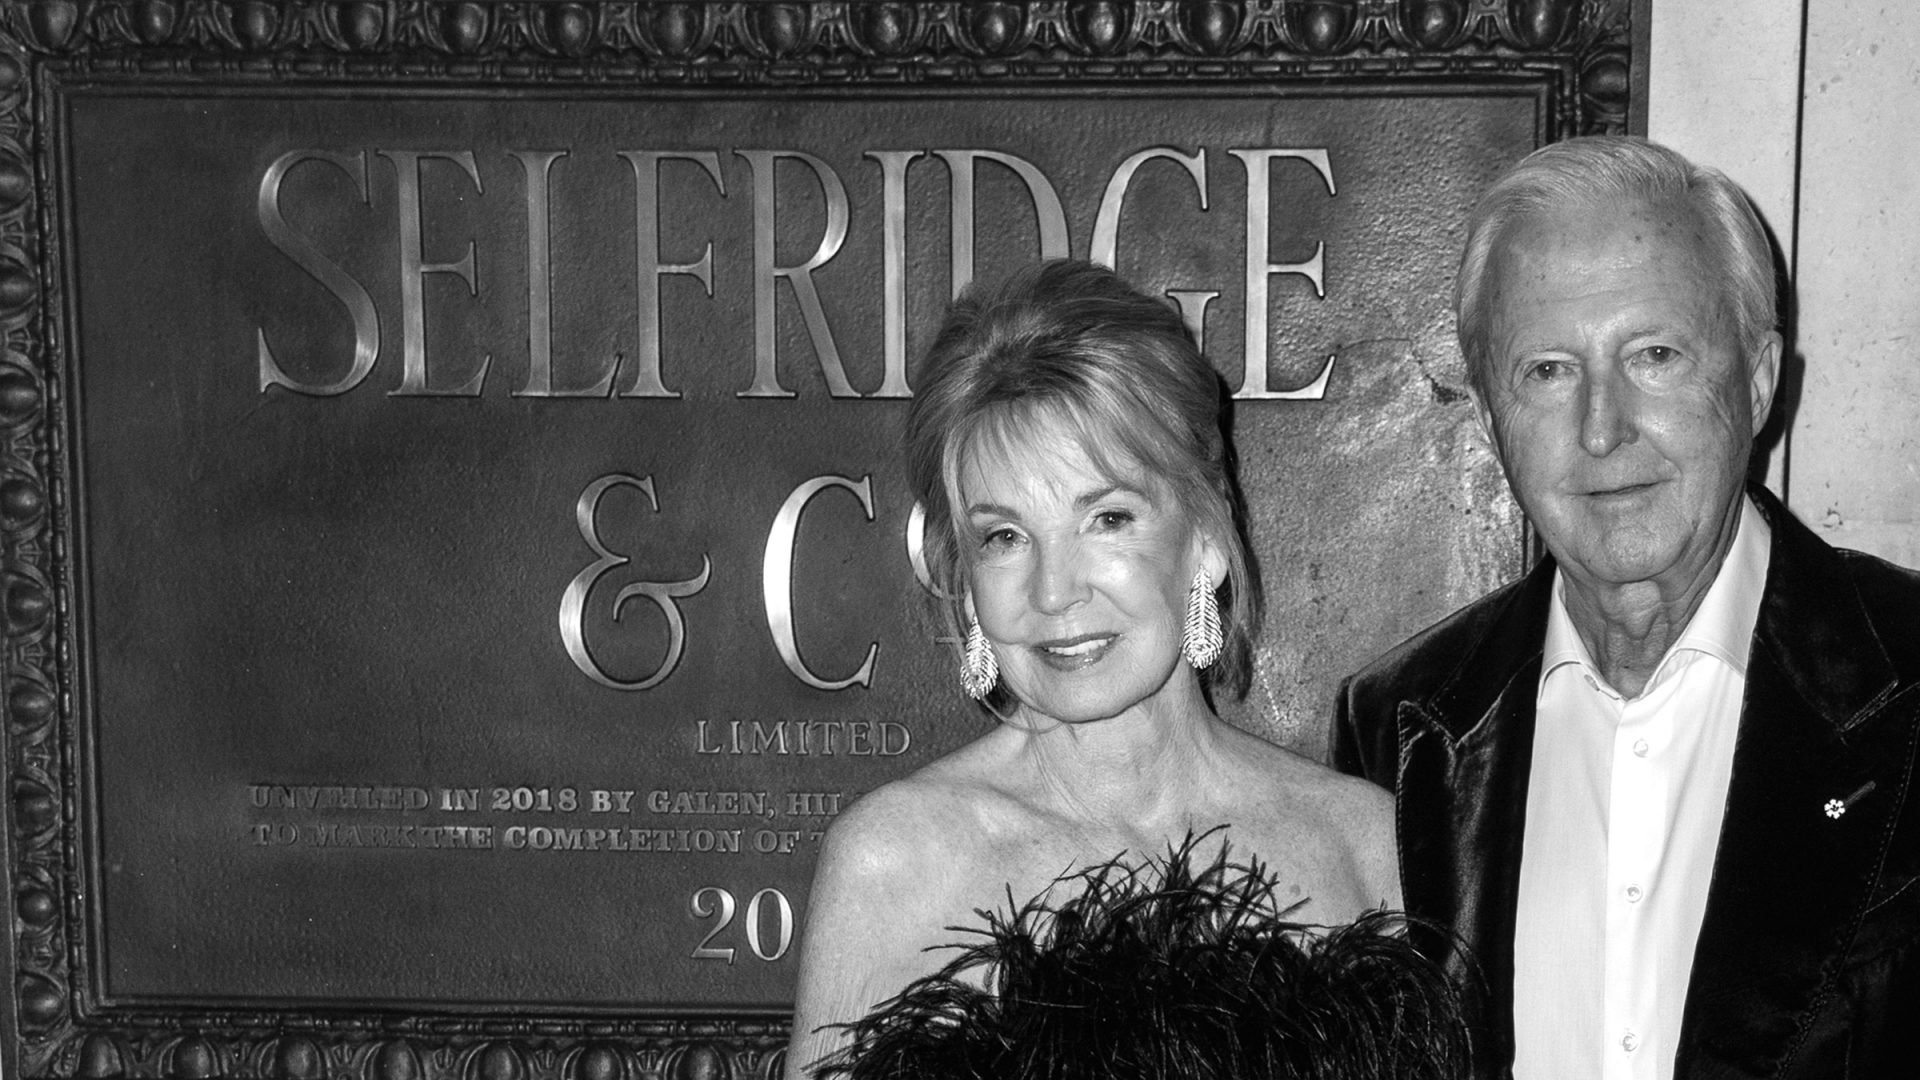 Hilary Weston and Galen Weston in front of Selfridges & Co.